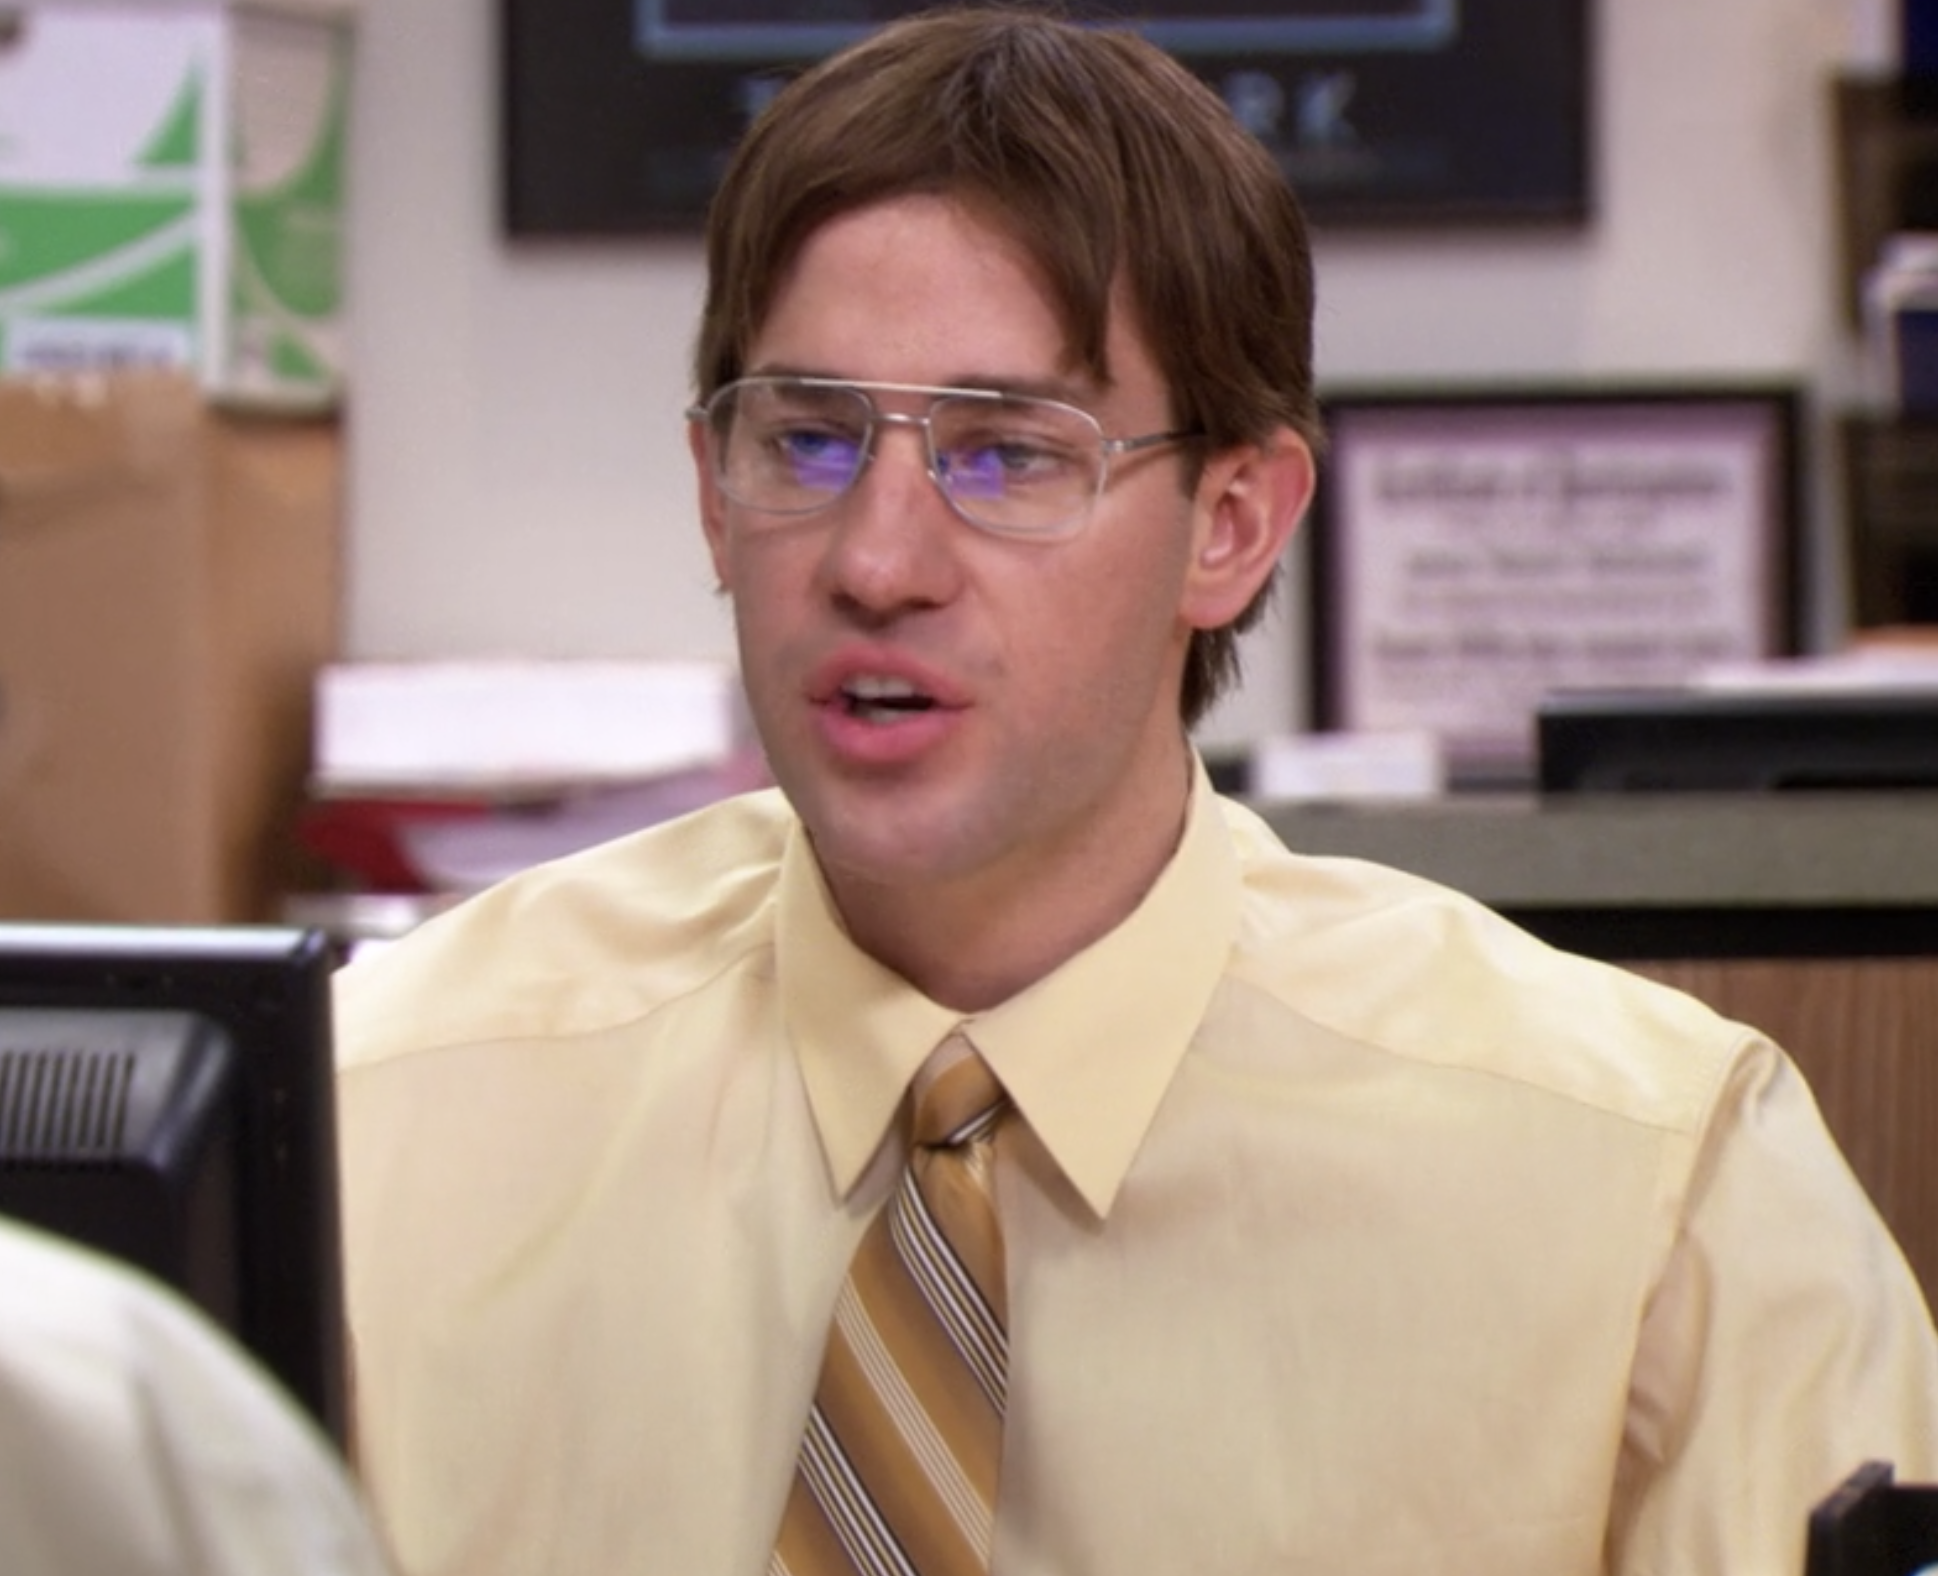 Jim dressed as Dwight